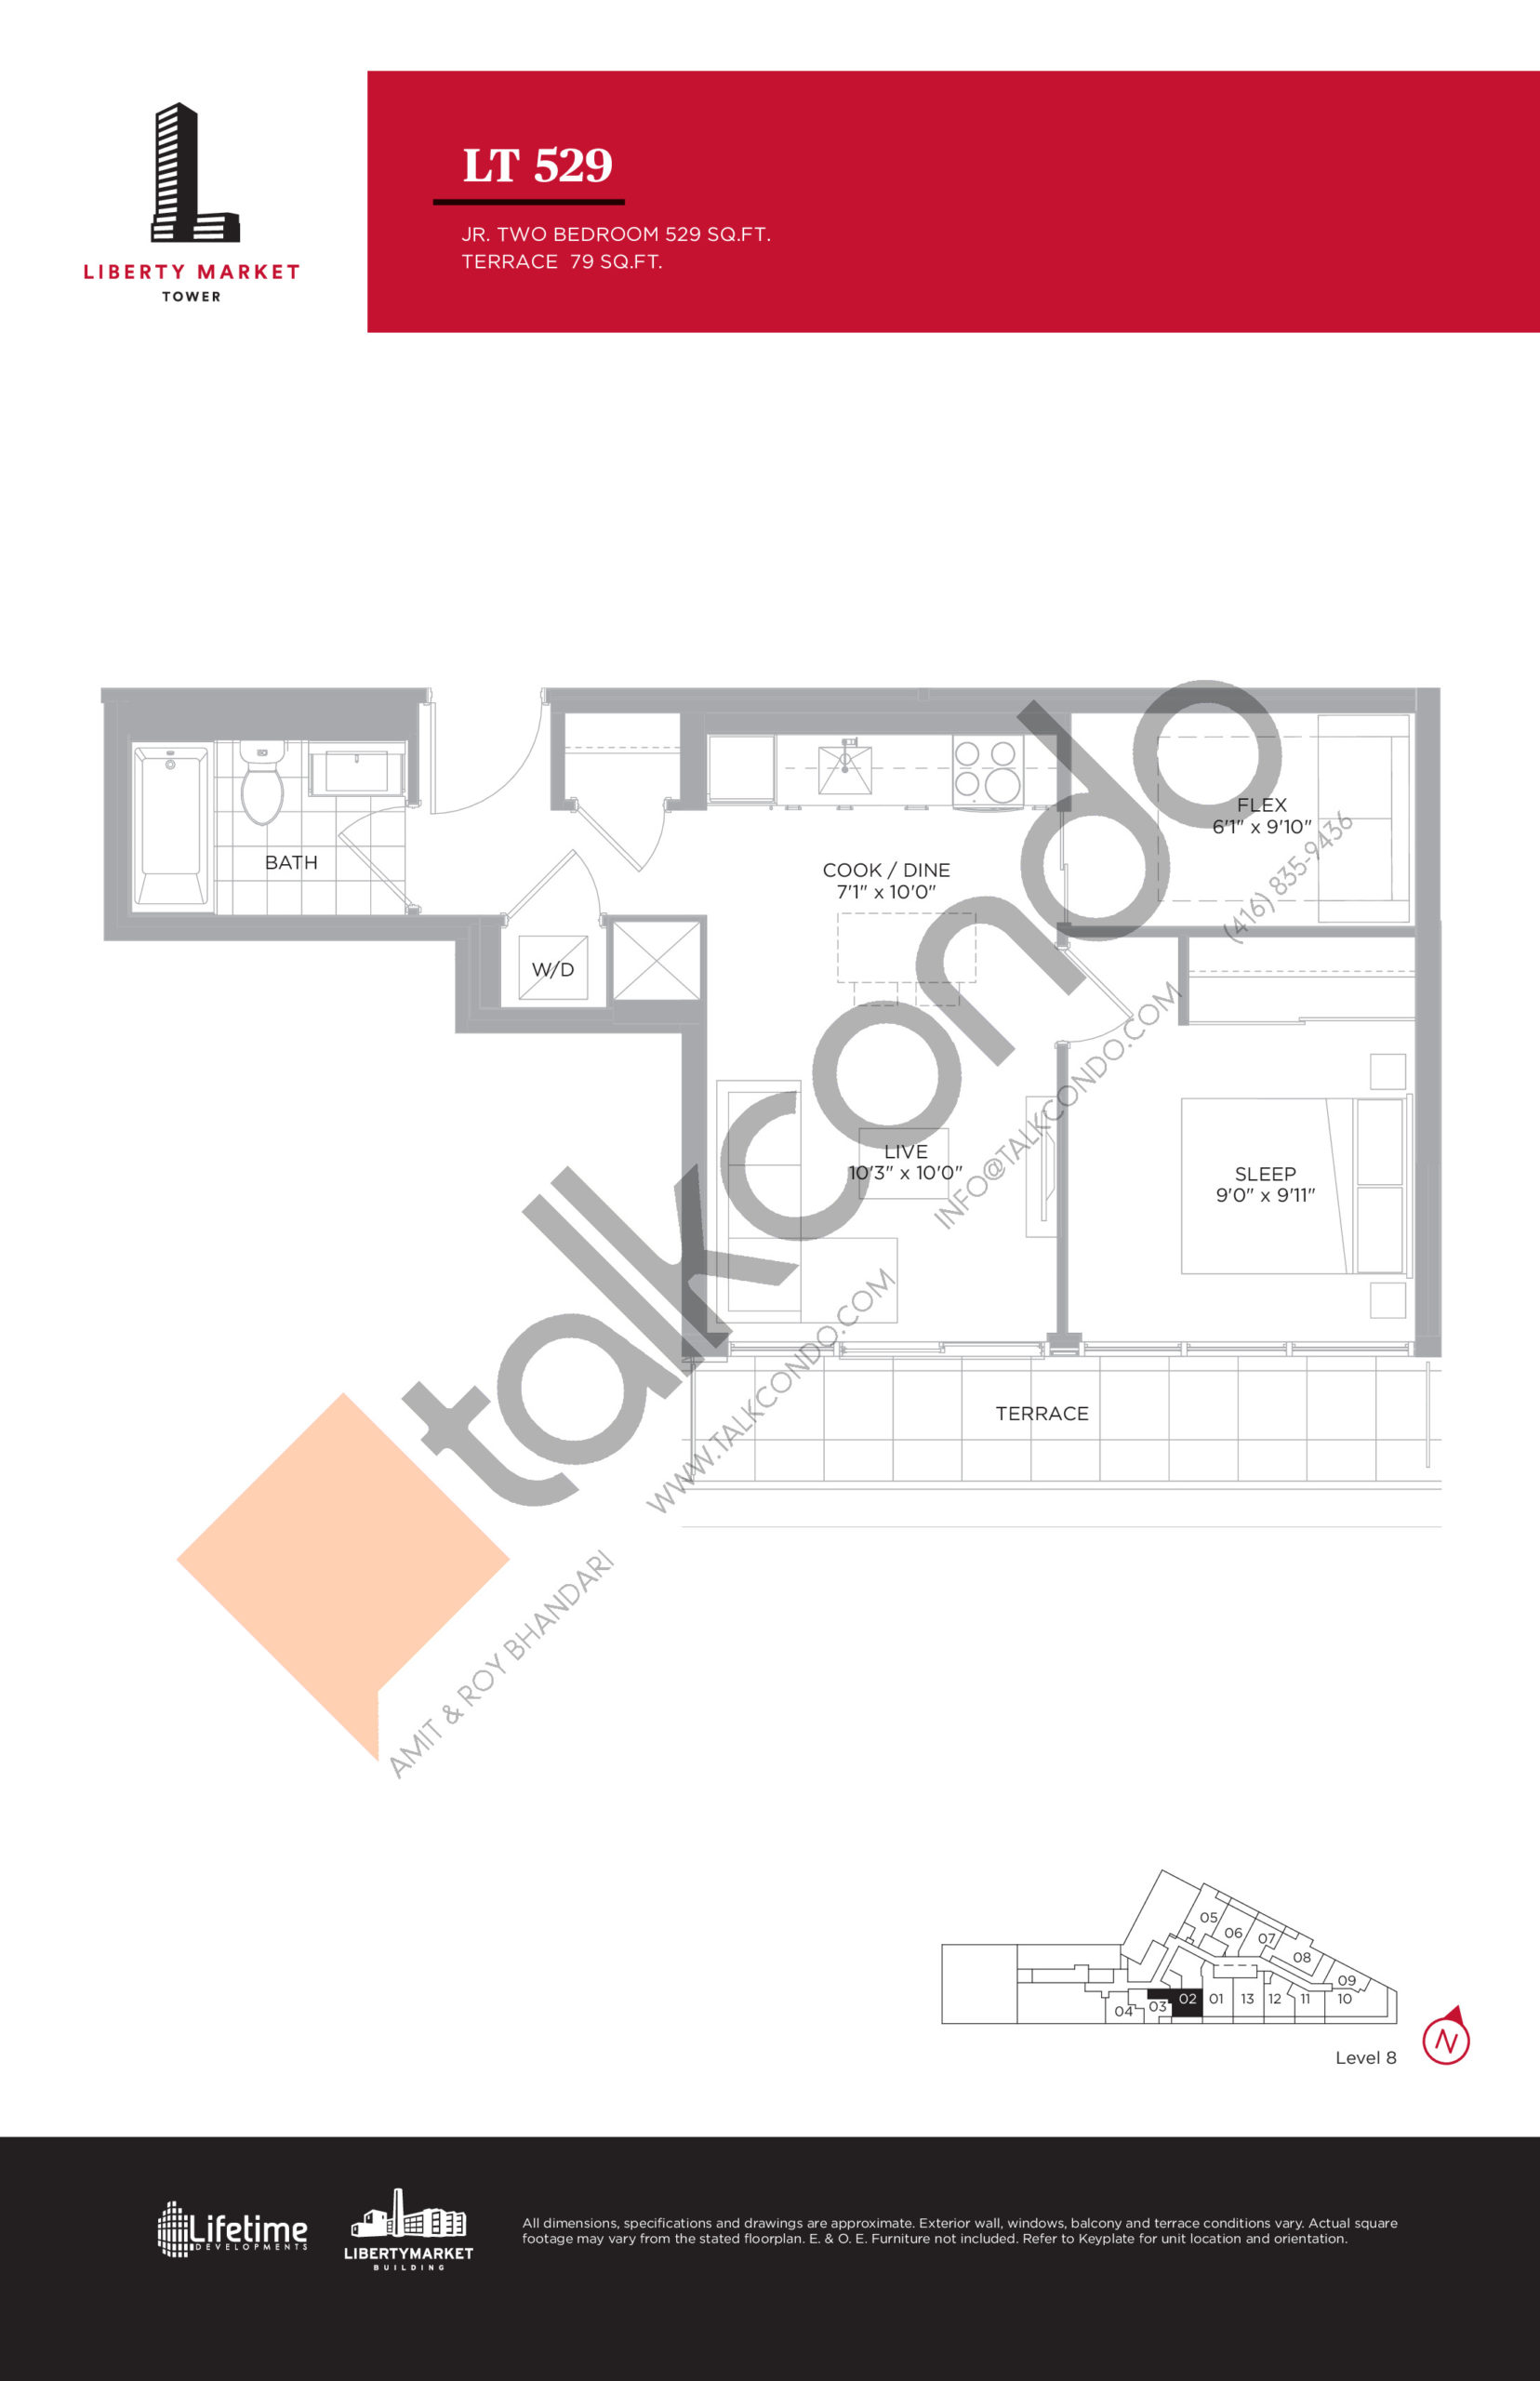 LT 529 - Terrace Collection Floor Plan at Liberty Market Tower Condos - 529 sq.ft